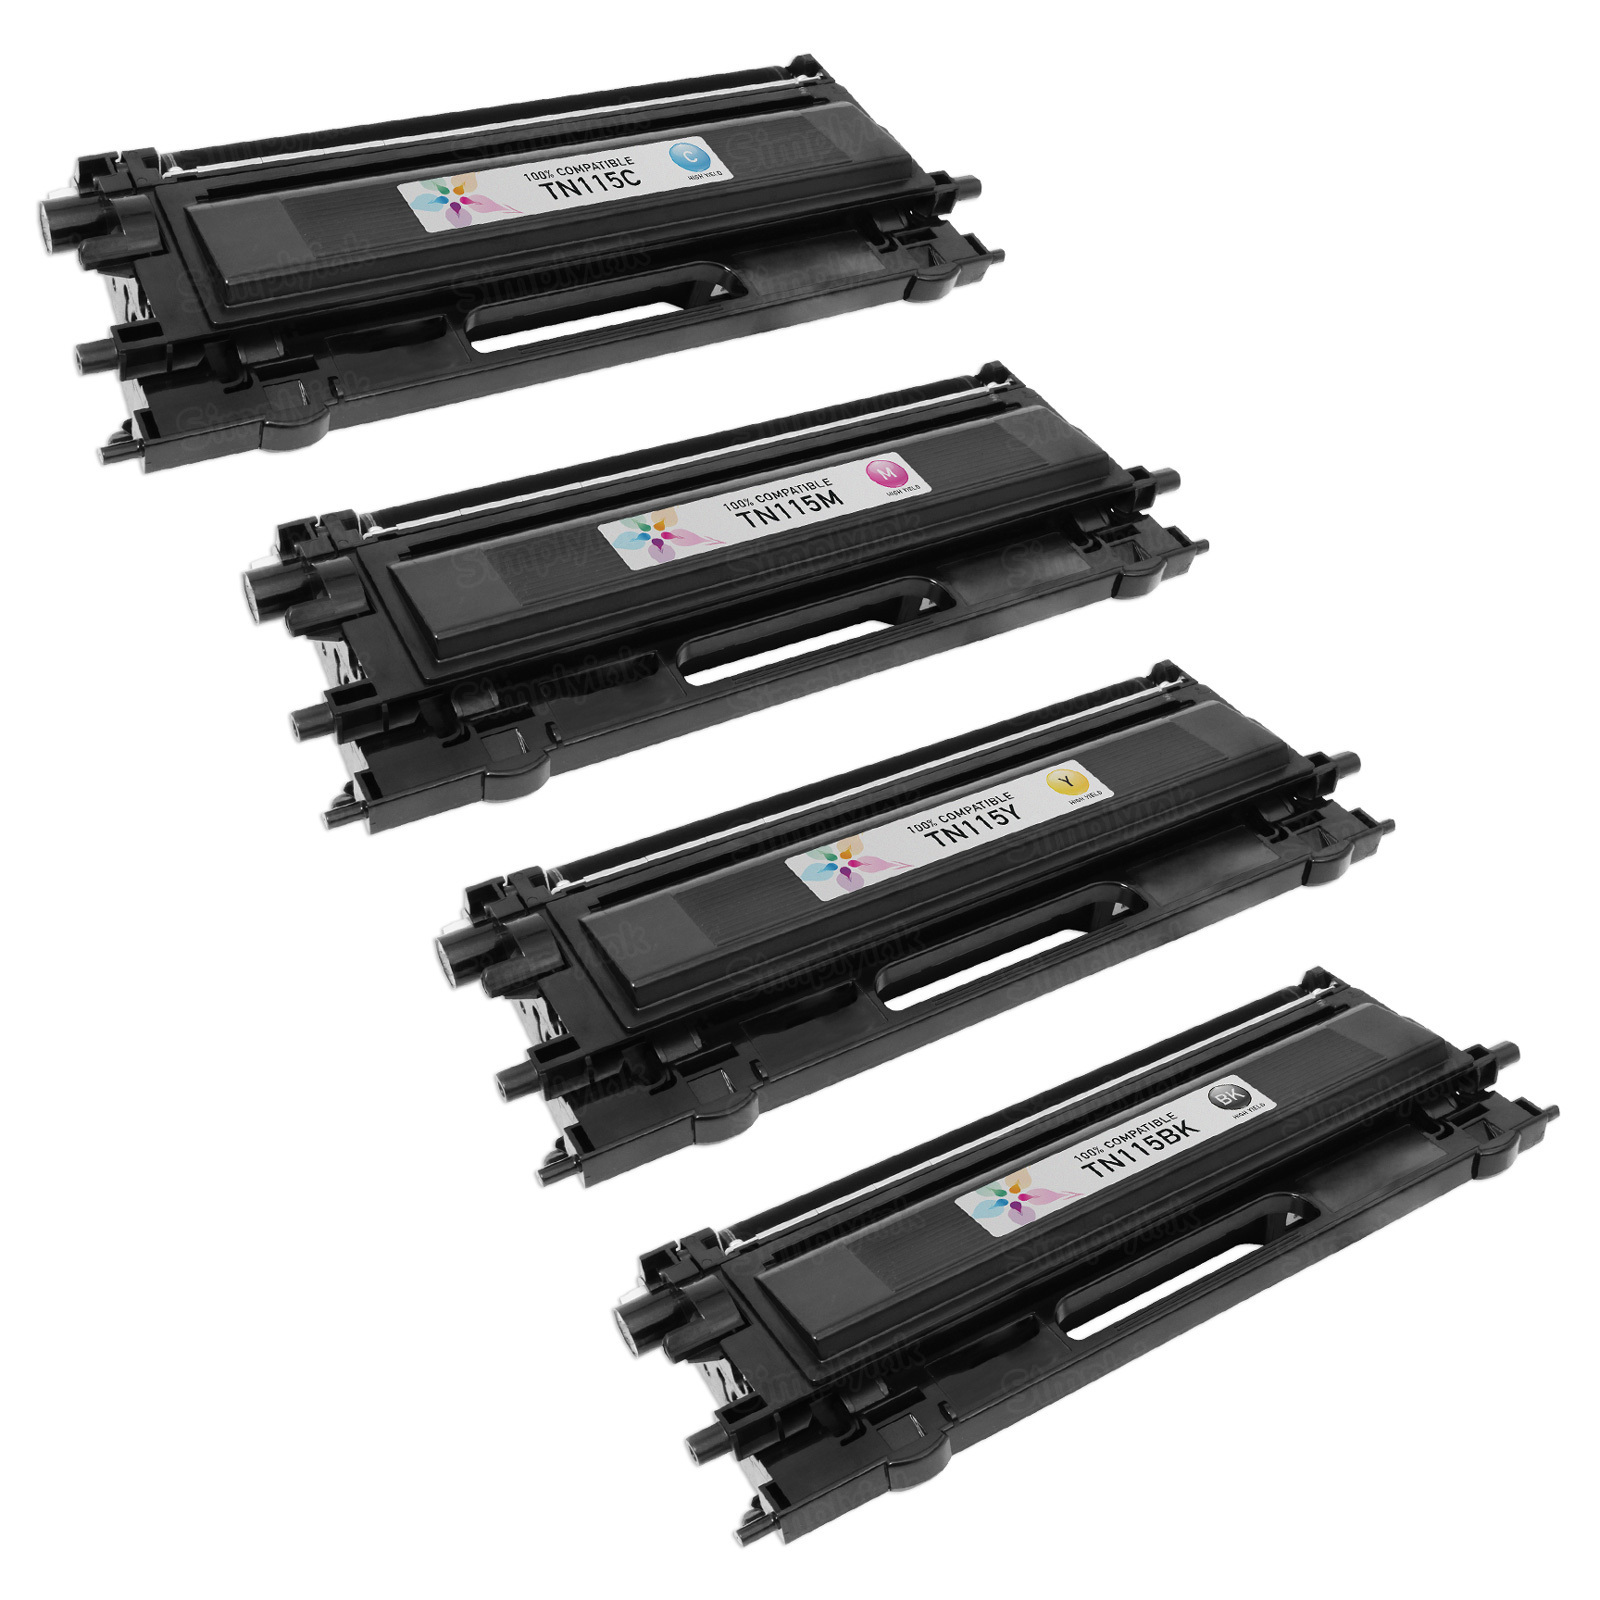 Remanufactured Brother TN115 HY Set Of 4 Laser Toners: Bk, C, M & Y